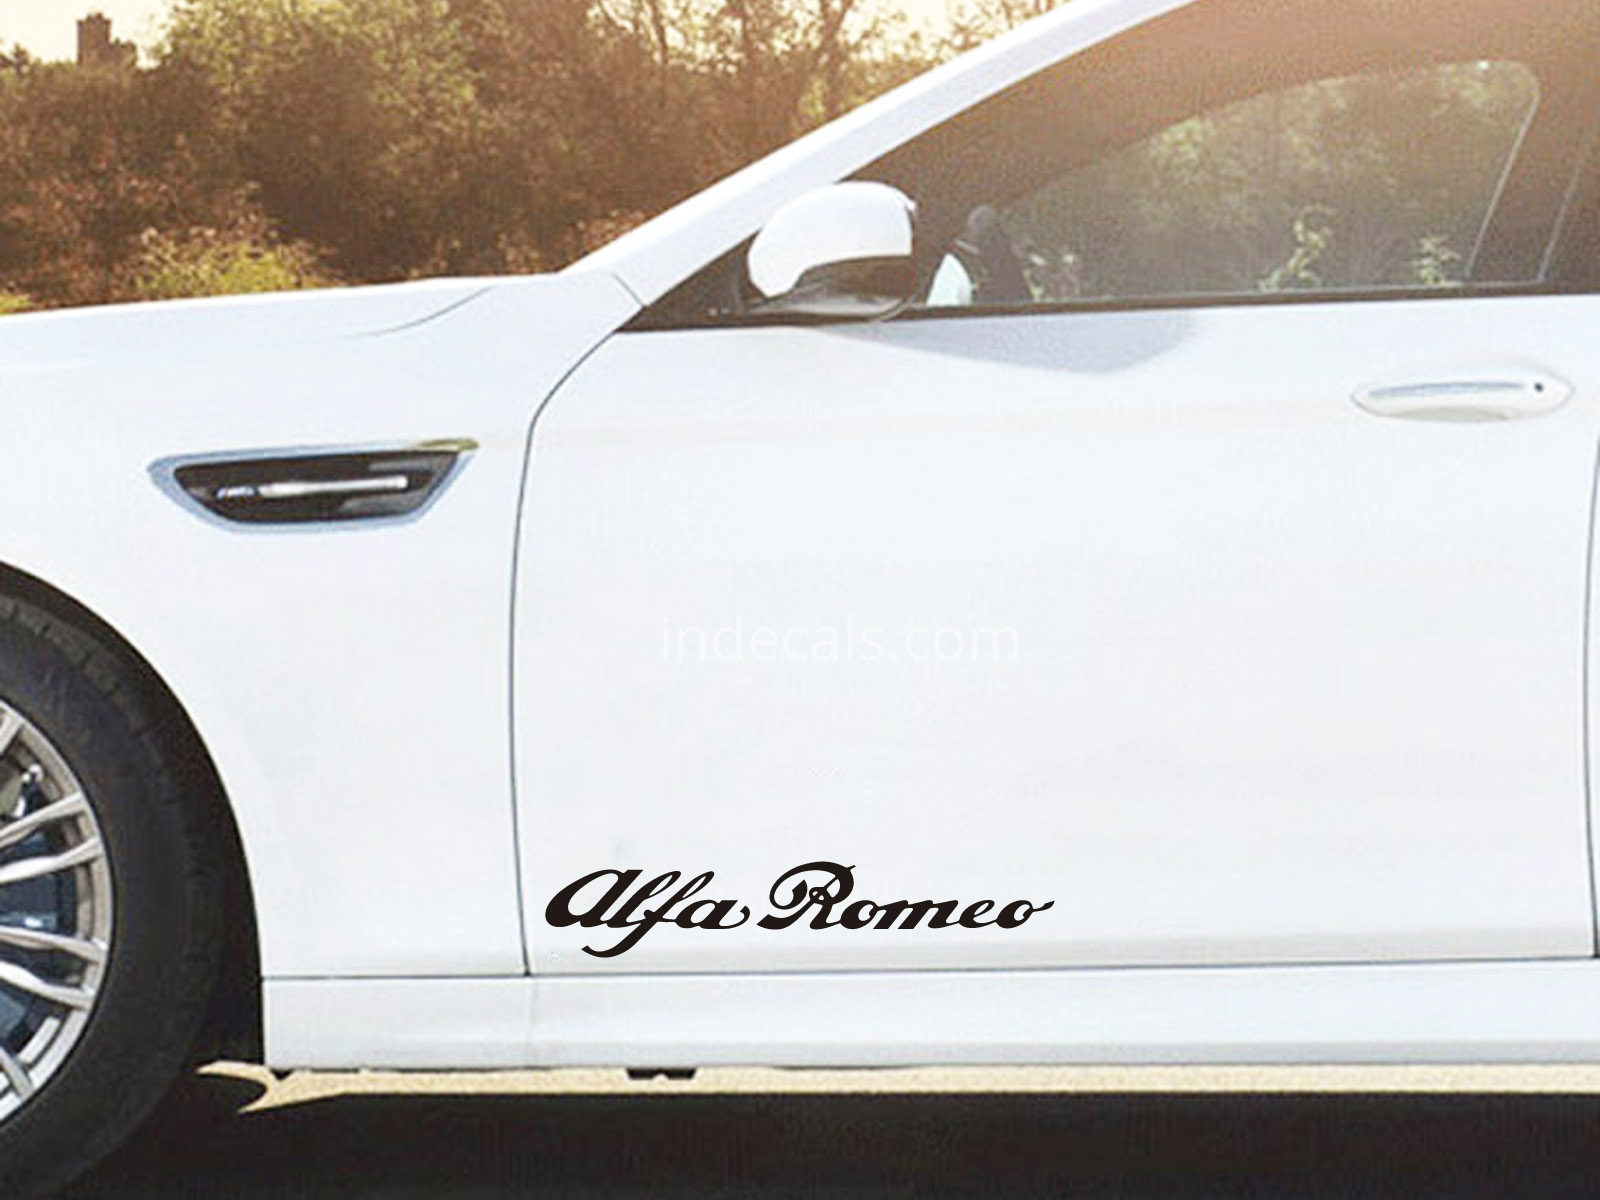 2 x Alfa Romeo Stickers for Doors Large - Black